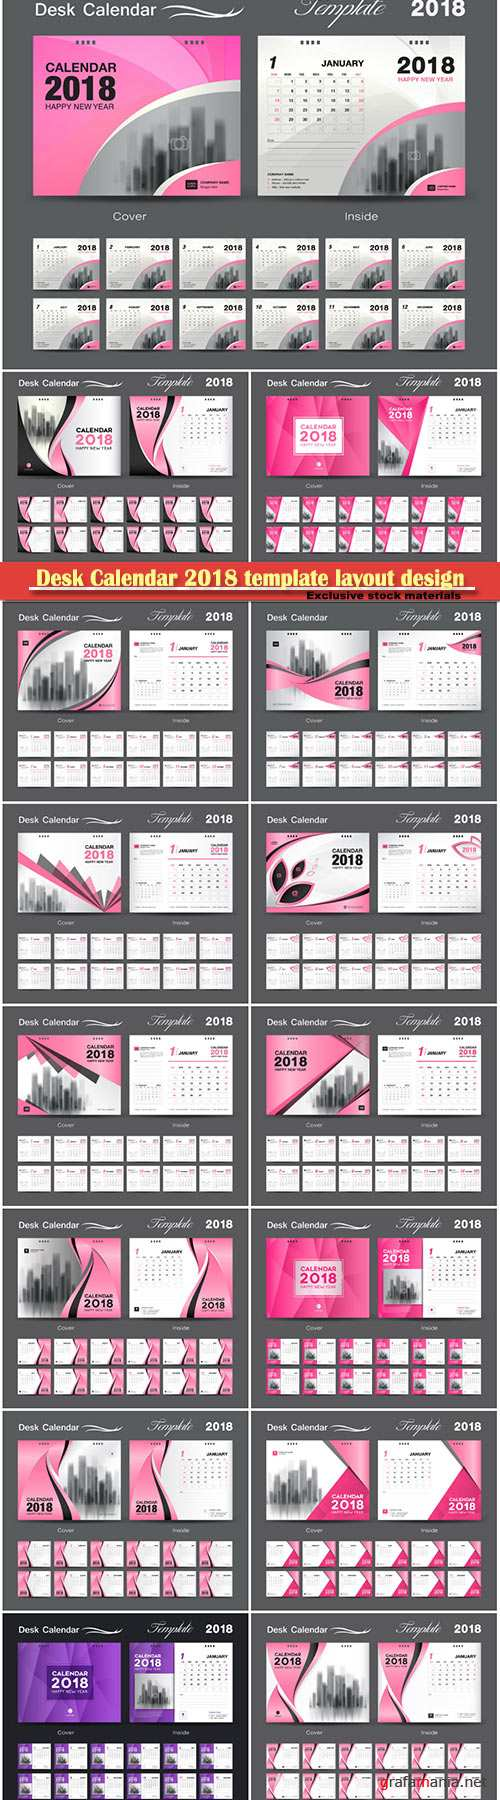 Desk Calendar 2018 template layout design, cover set of 12 months